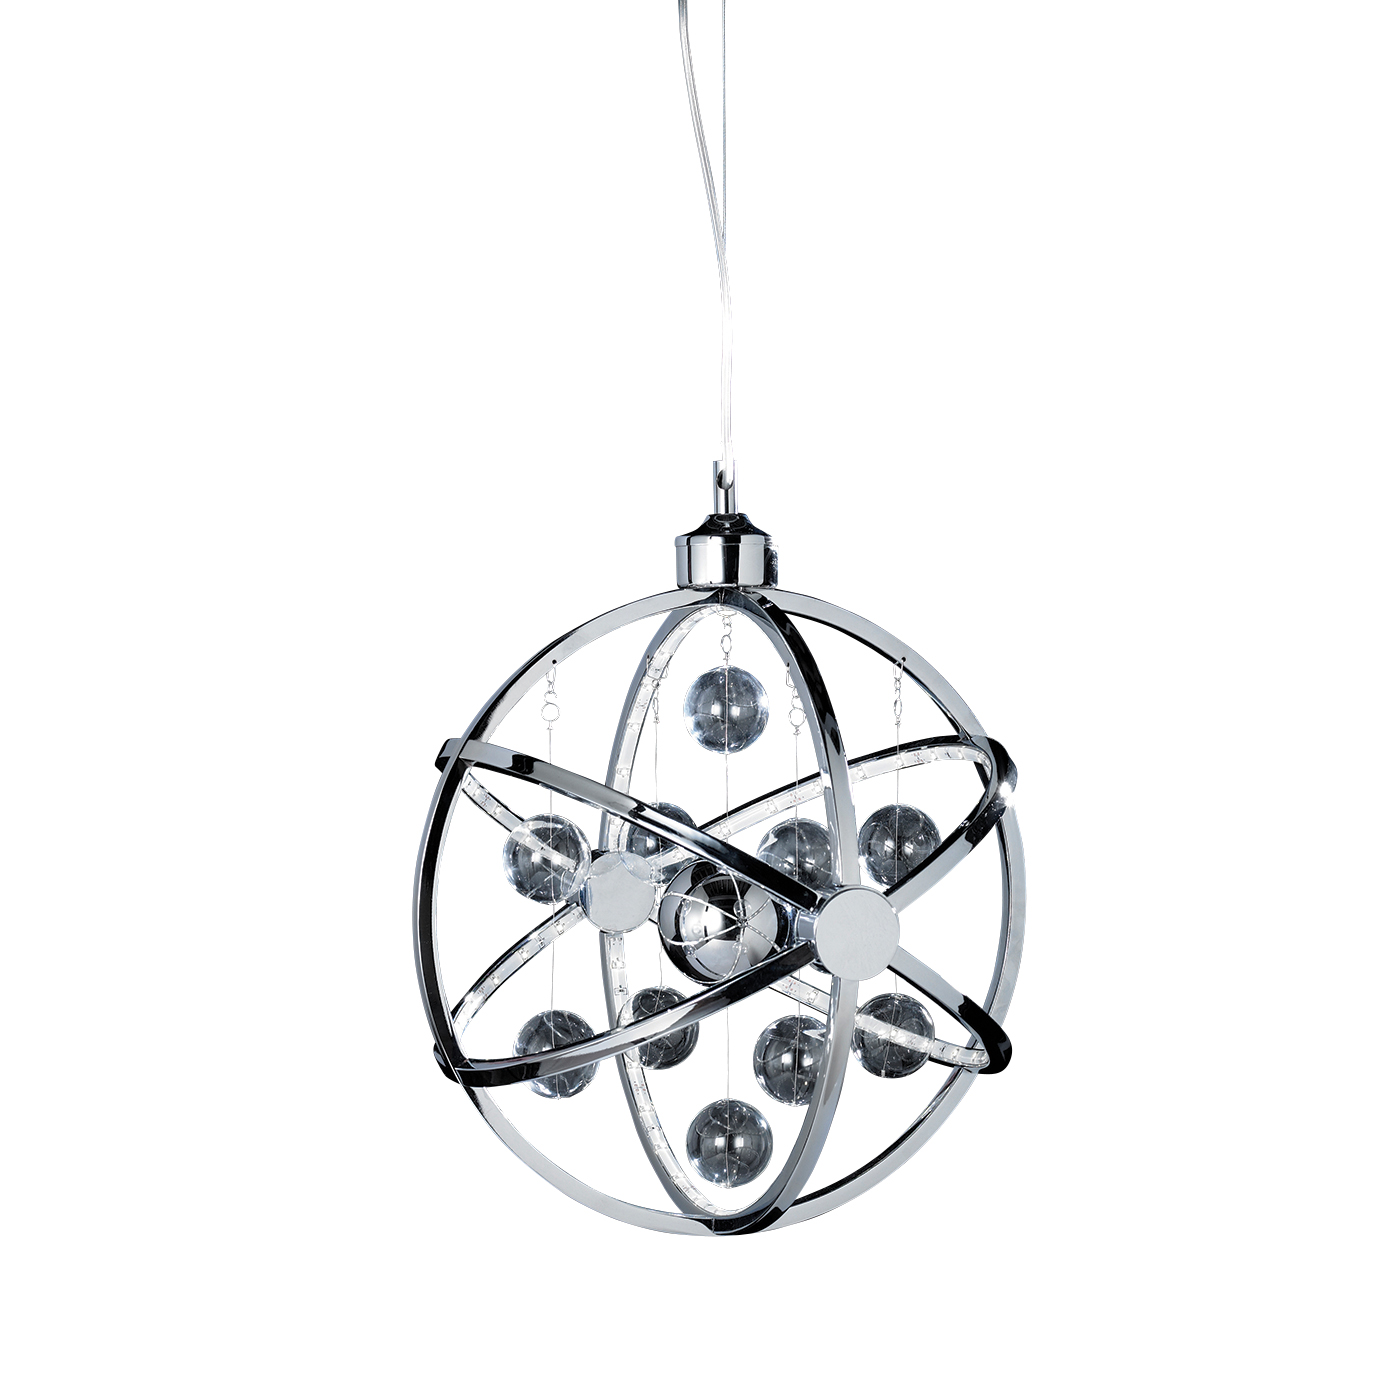 Endon Muni 390mm pendant 7.5W Chrome effect plate with clear chrome glass balls Thumbnail 1